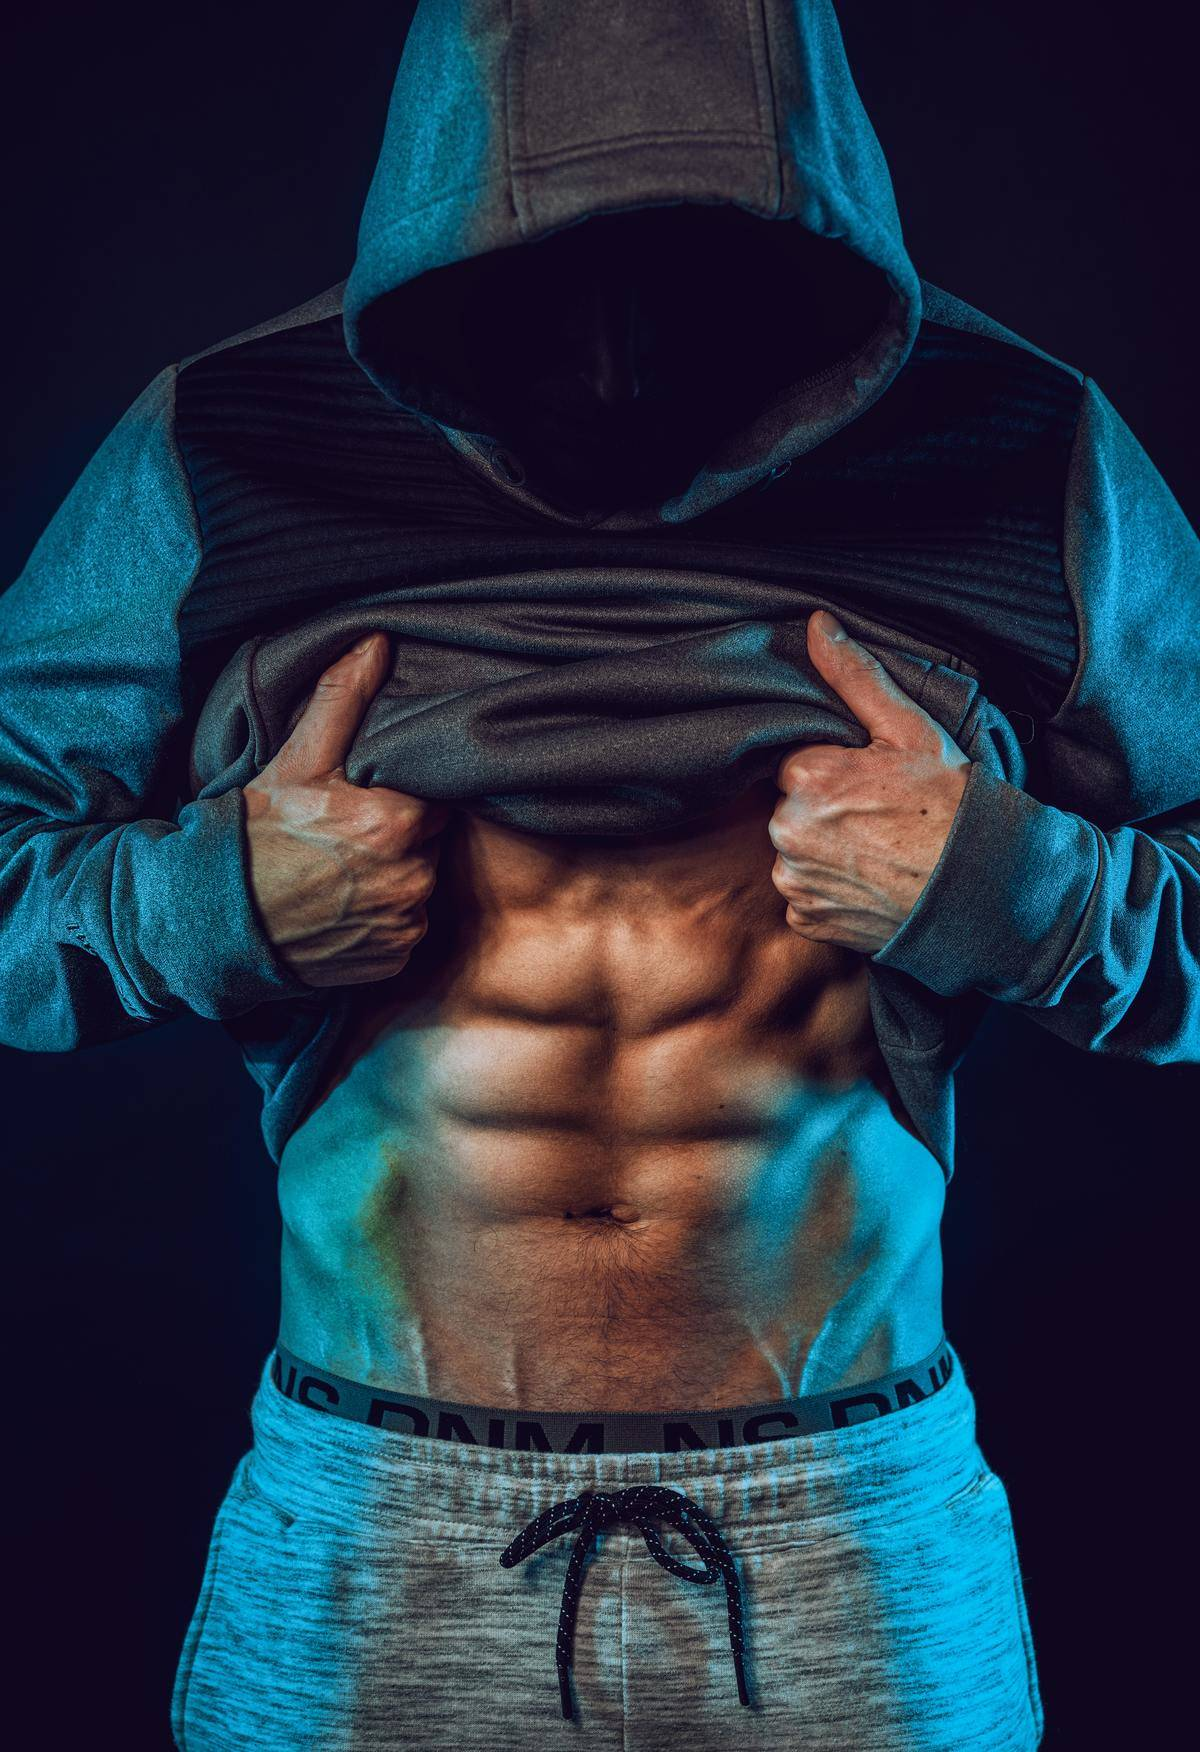 man shows off abs under his shirt